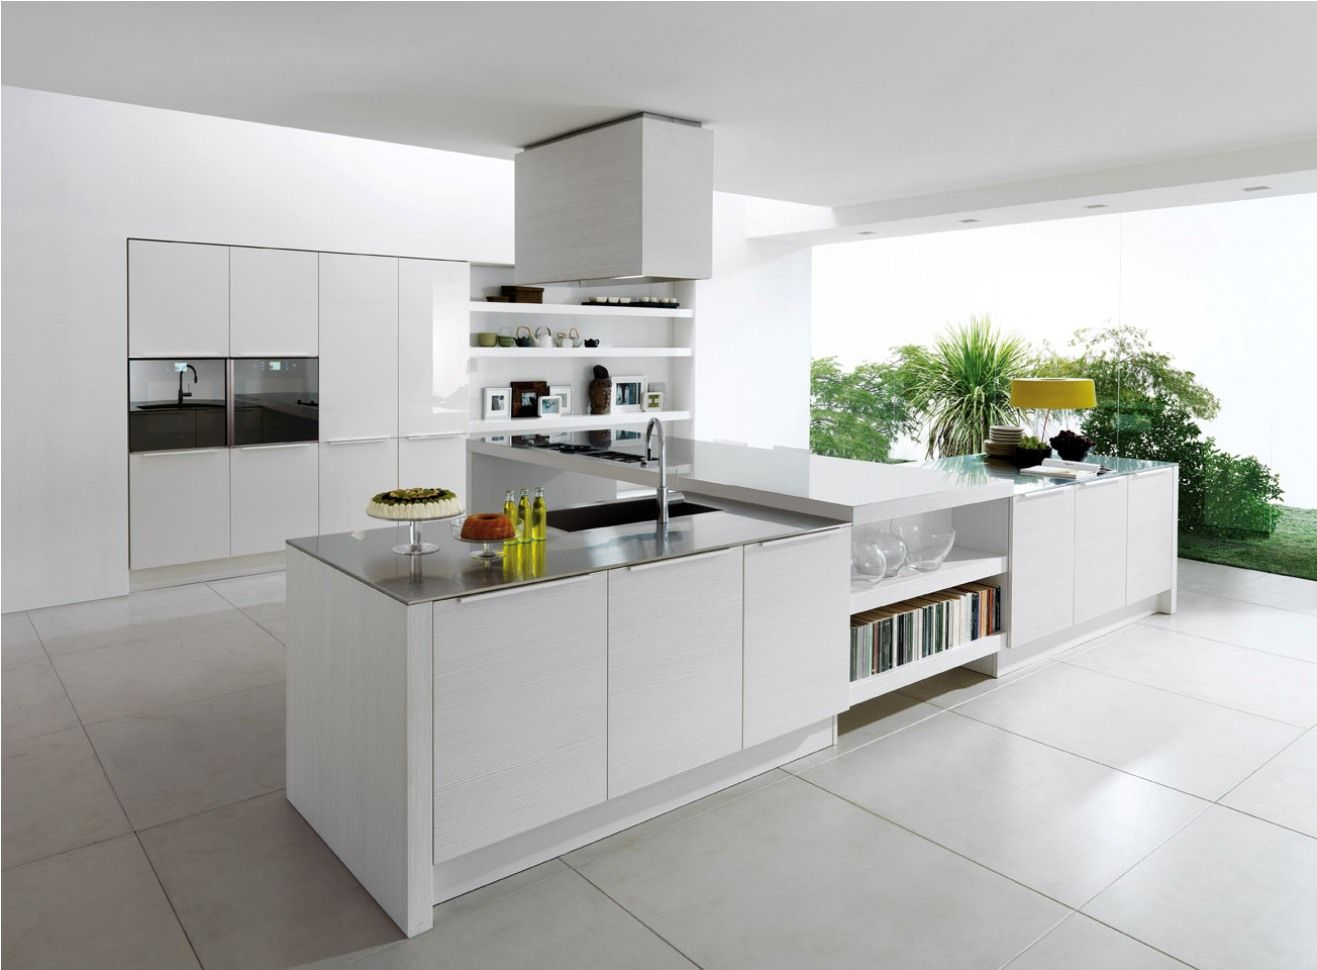 30 contemporary white kitchens ideas modern kitchen designs for White kitchen cabinets ideas